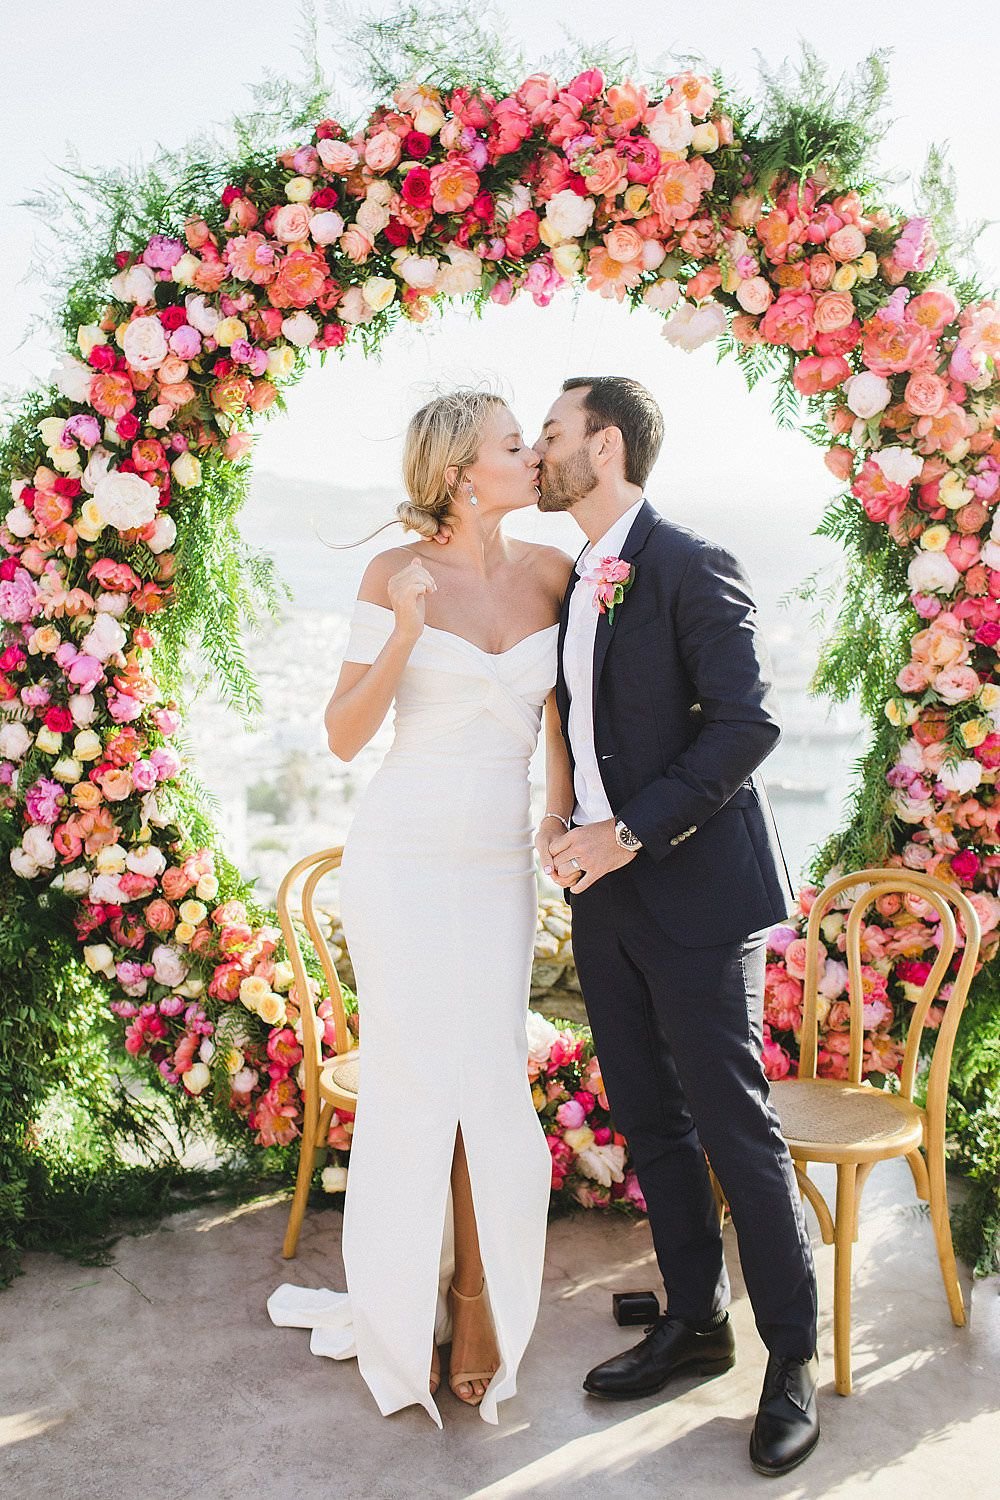 Oh, you gotta love this al fresco destination wedding in Mykonos, Greece with colorful florals and a giant floral hoop. A celebration with an off-the-shoulder bridal gown, floating bulb terrariums and metallic printed bridesmaid dresses, this Grecian wedding felt a lot like Vogue! See more on #ruffledblog